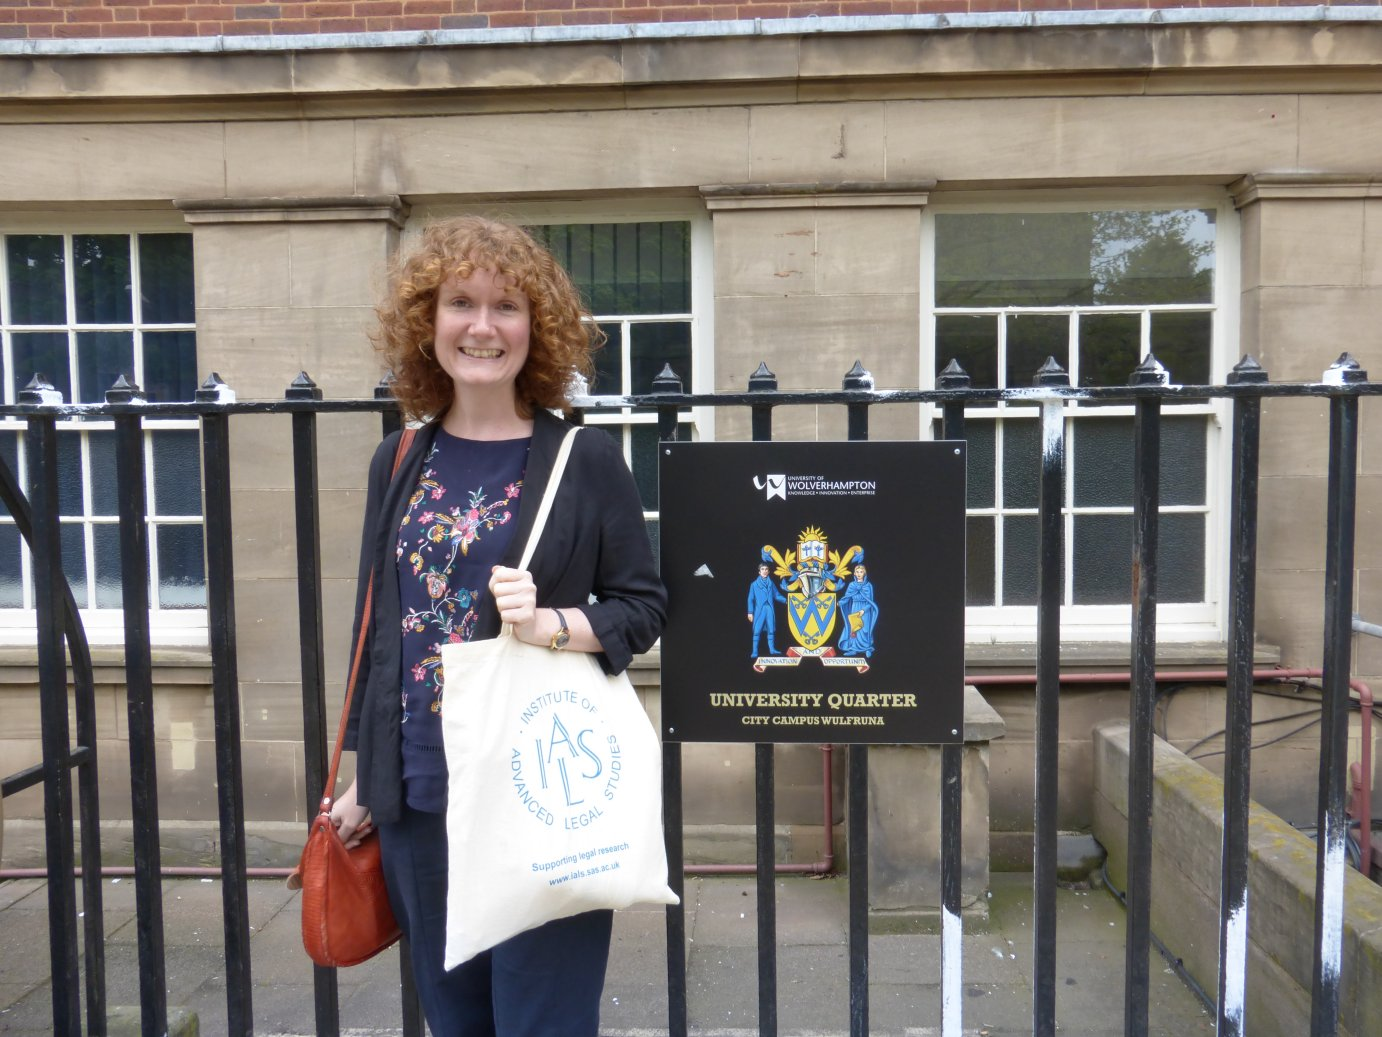 Lisa Davies arriving for the IALS Road Show at Wolverhampton University 2016